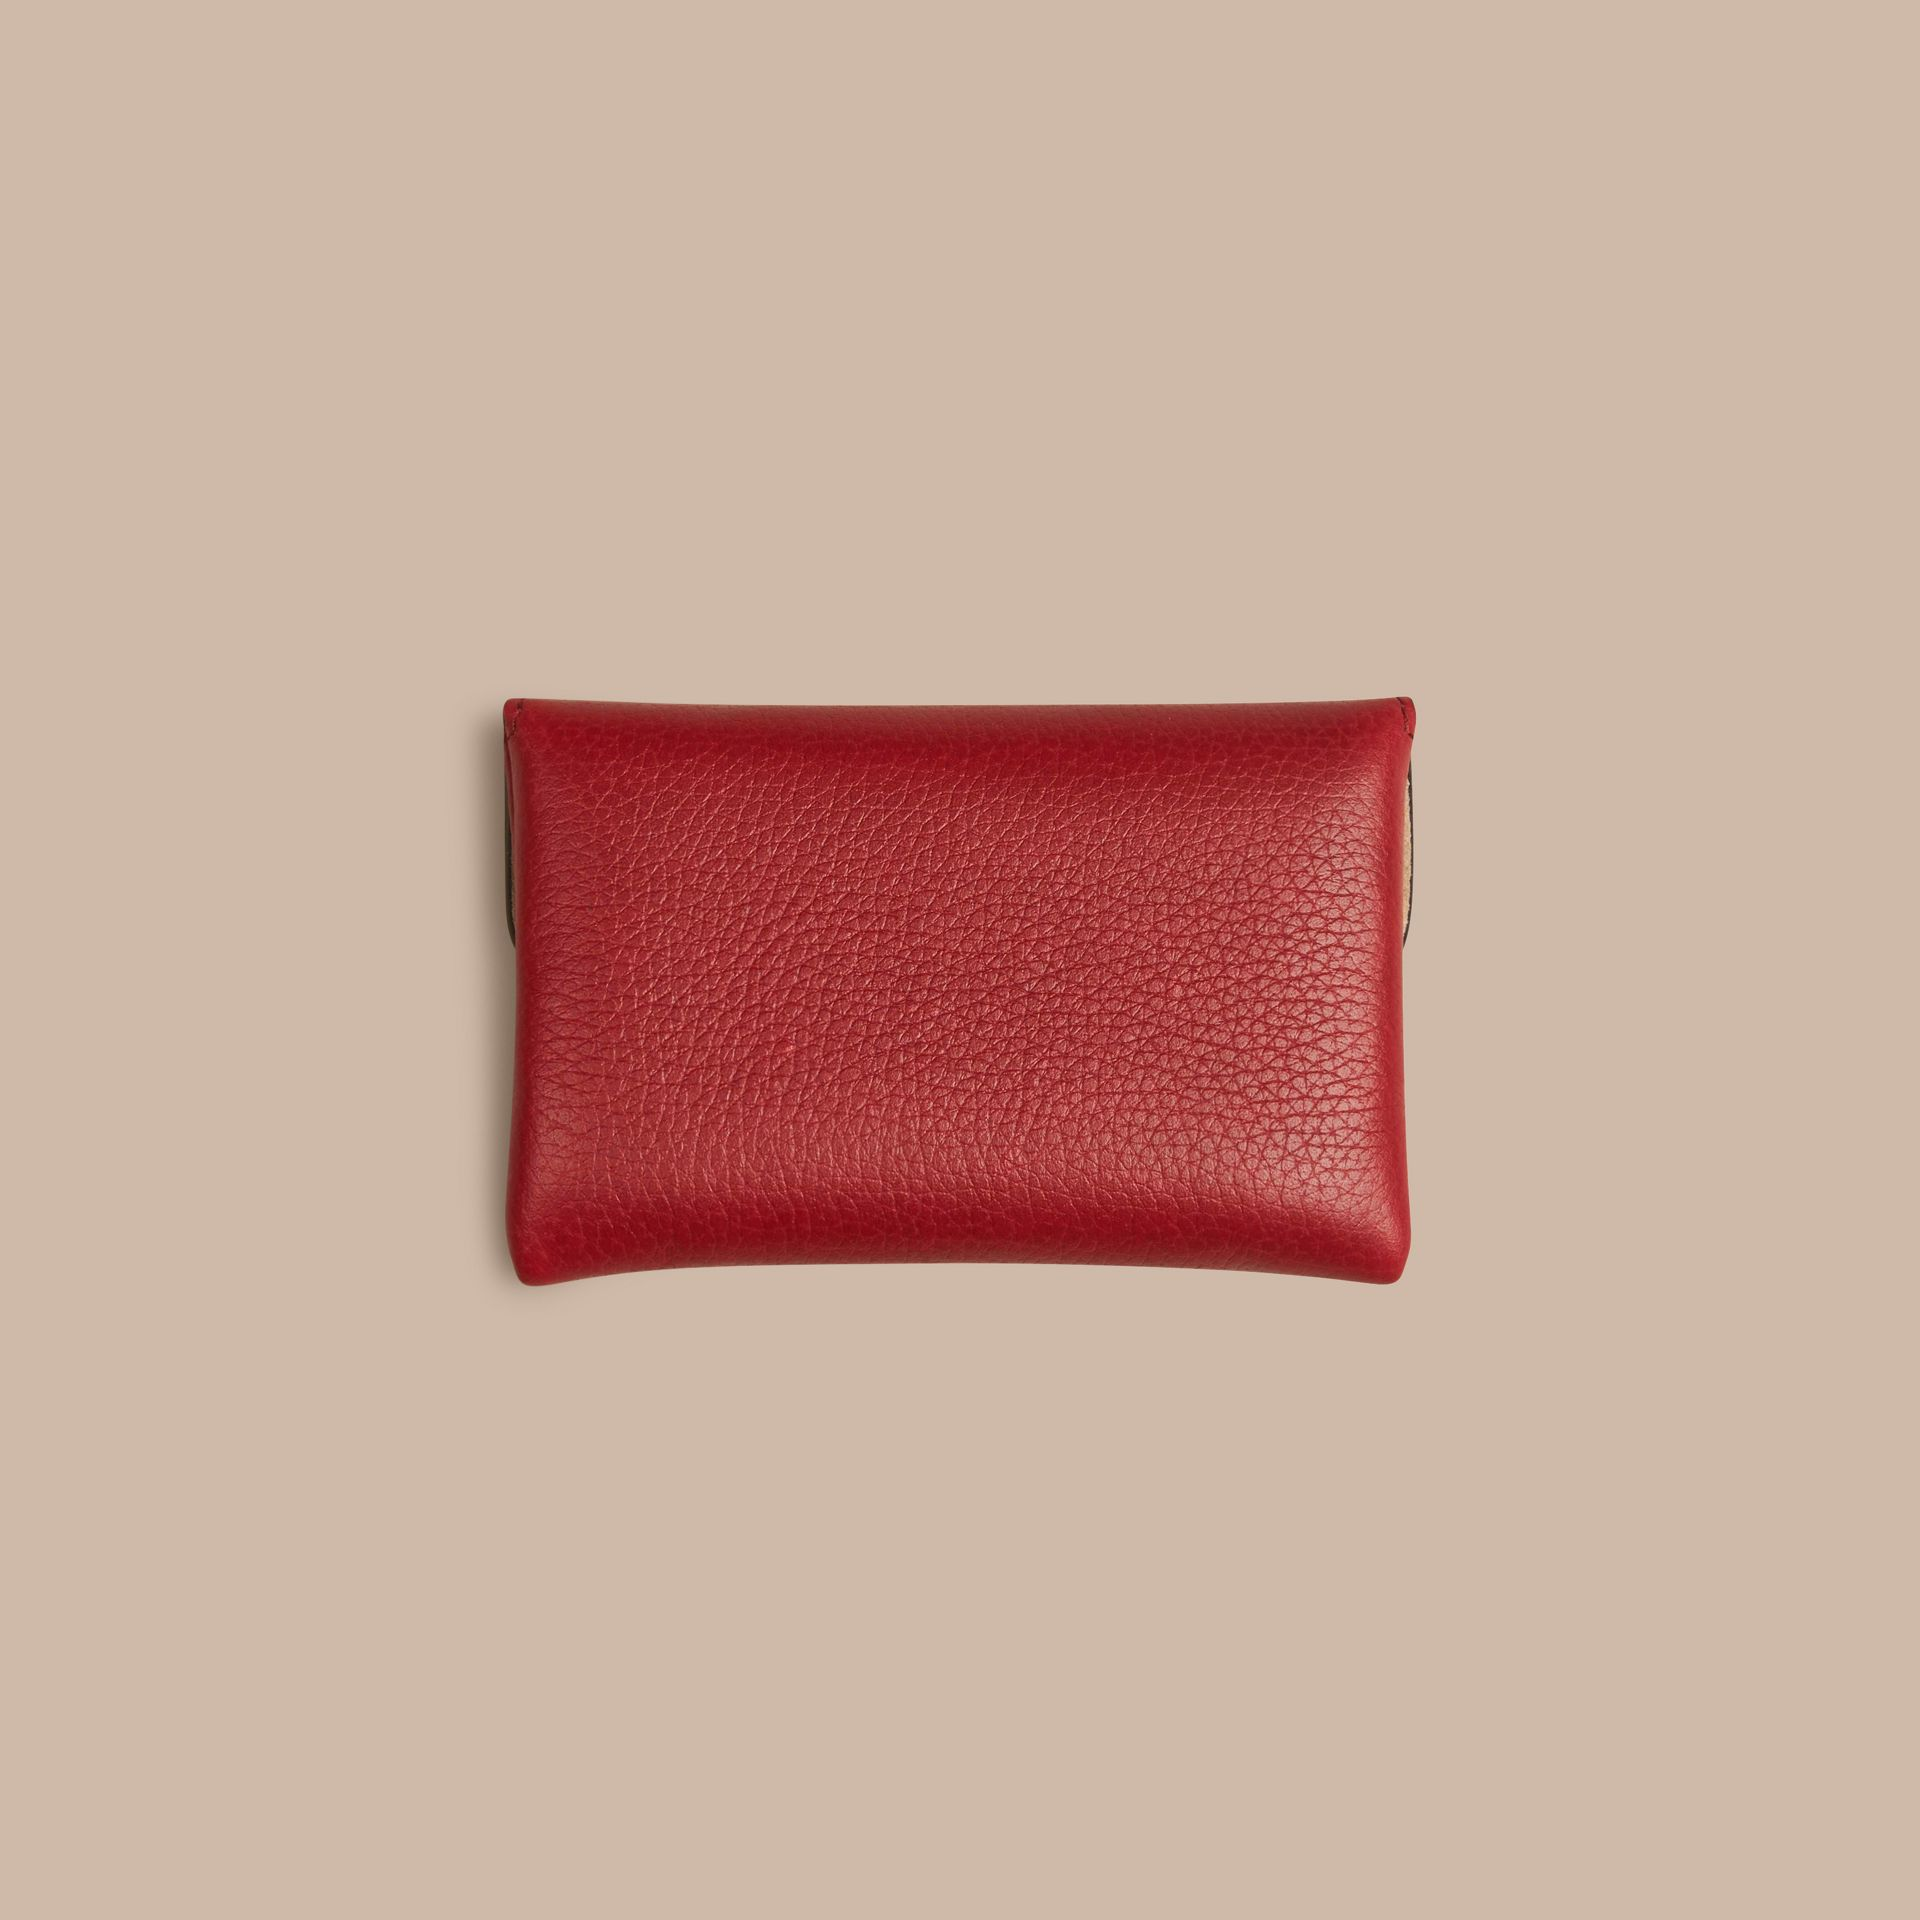 Grainy Leather Playing Card Case in Parade Red | Burberry - gallery image 4